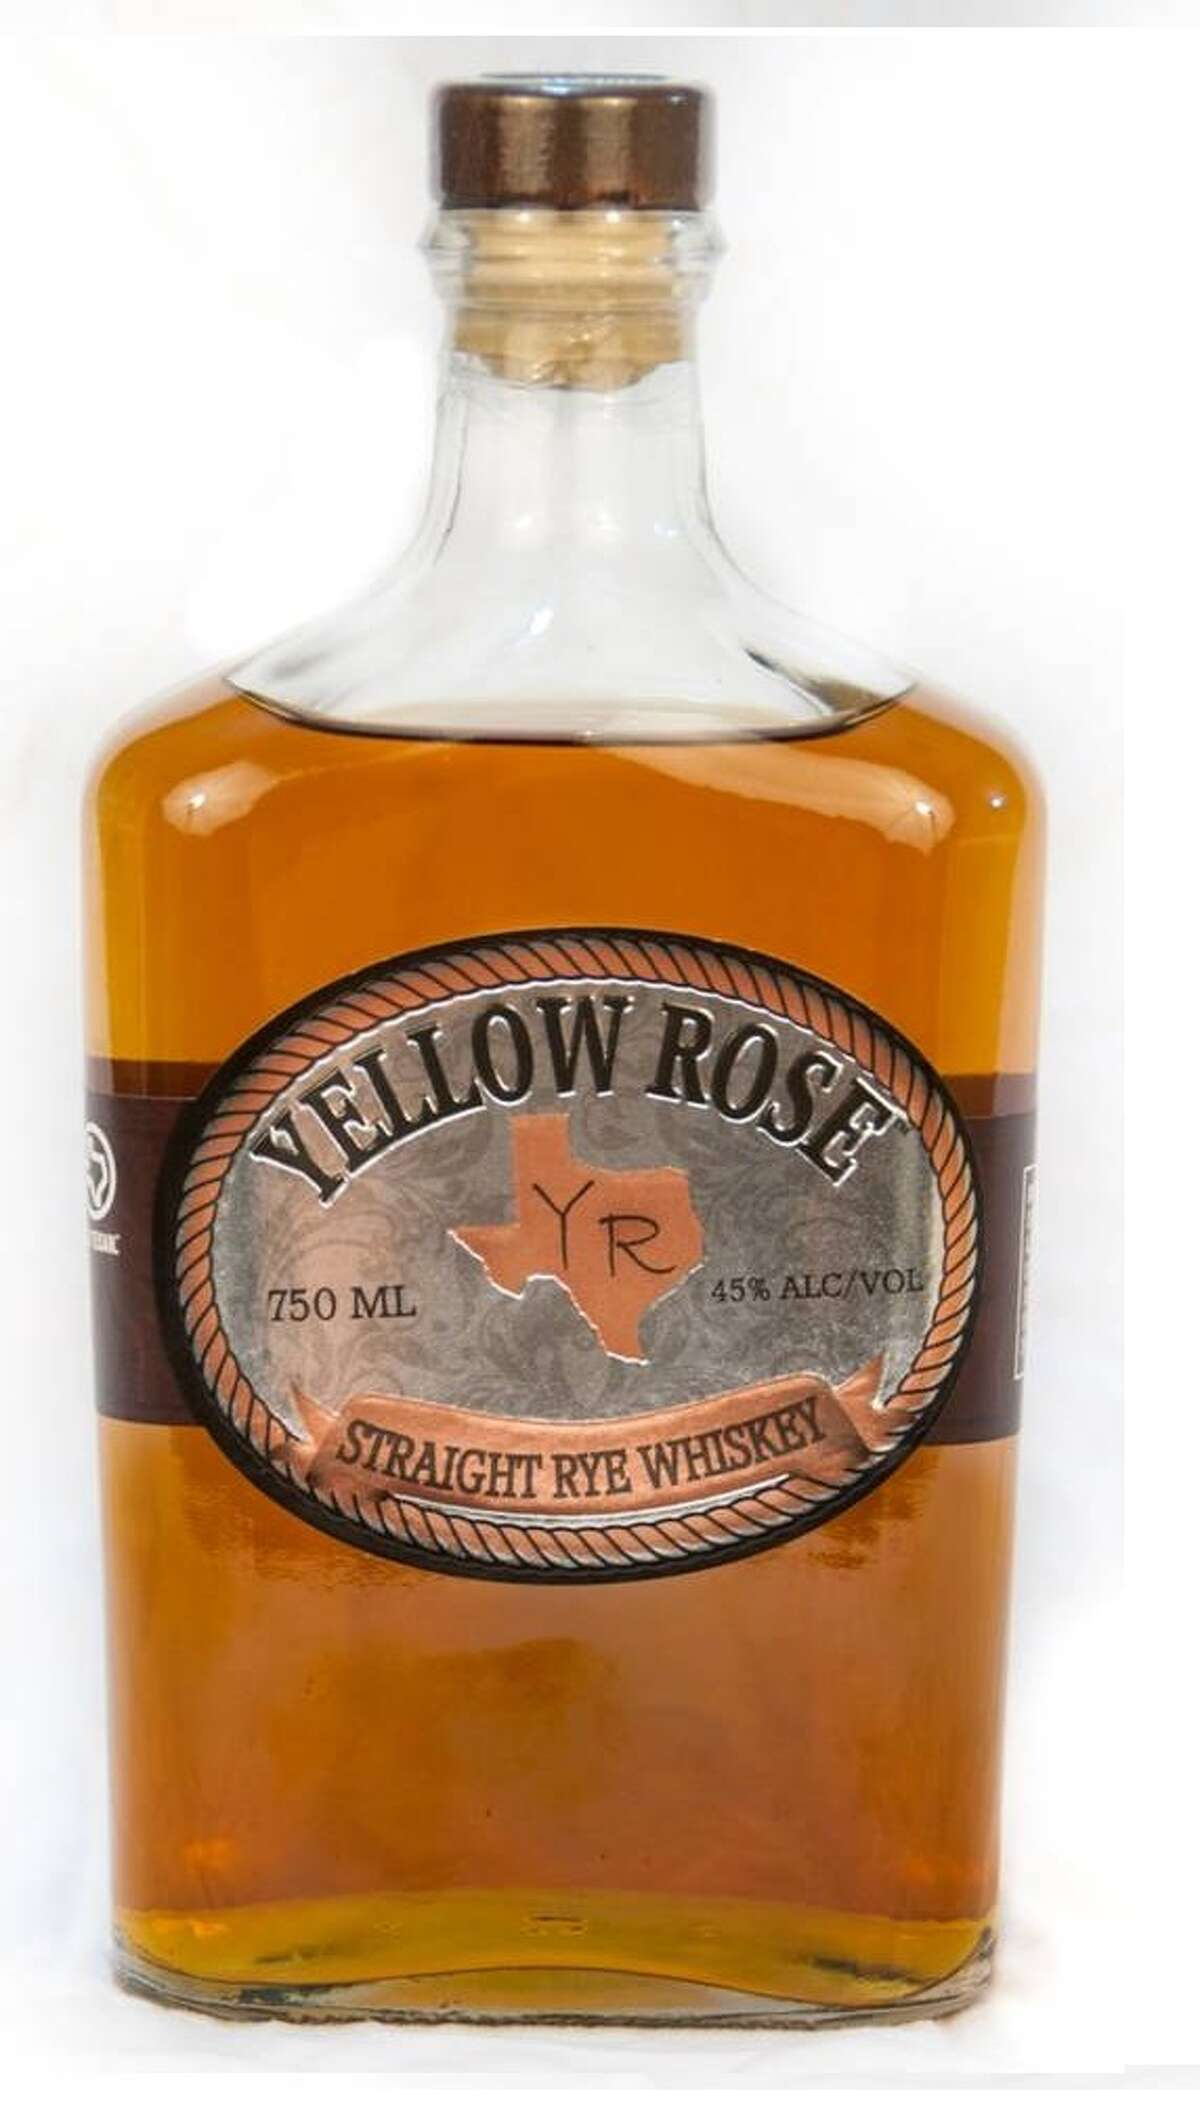 Yellow Rose Straight Rye Whiskey was launched October 2012. It comes from Yellow Rose Distilling, Houston's first whiskey distillery.